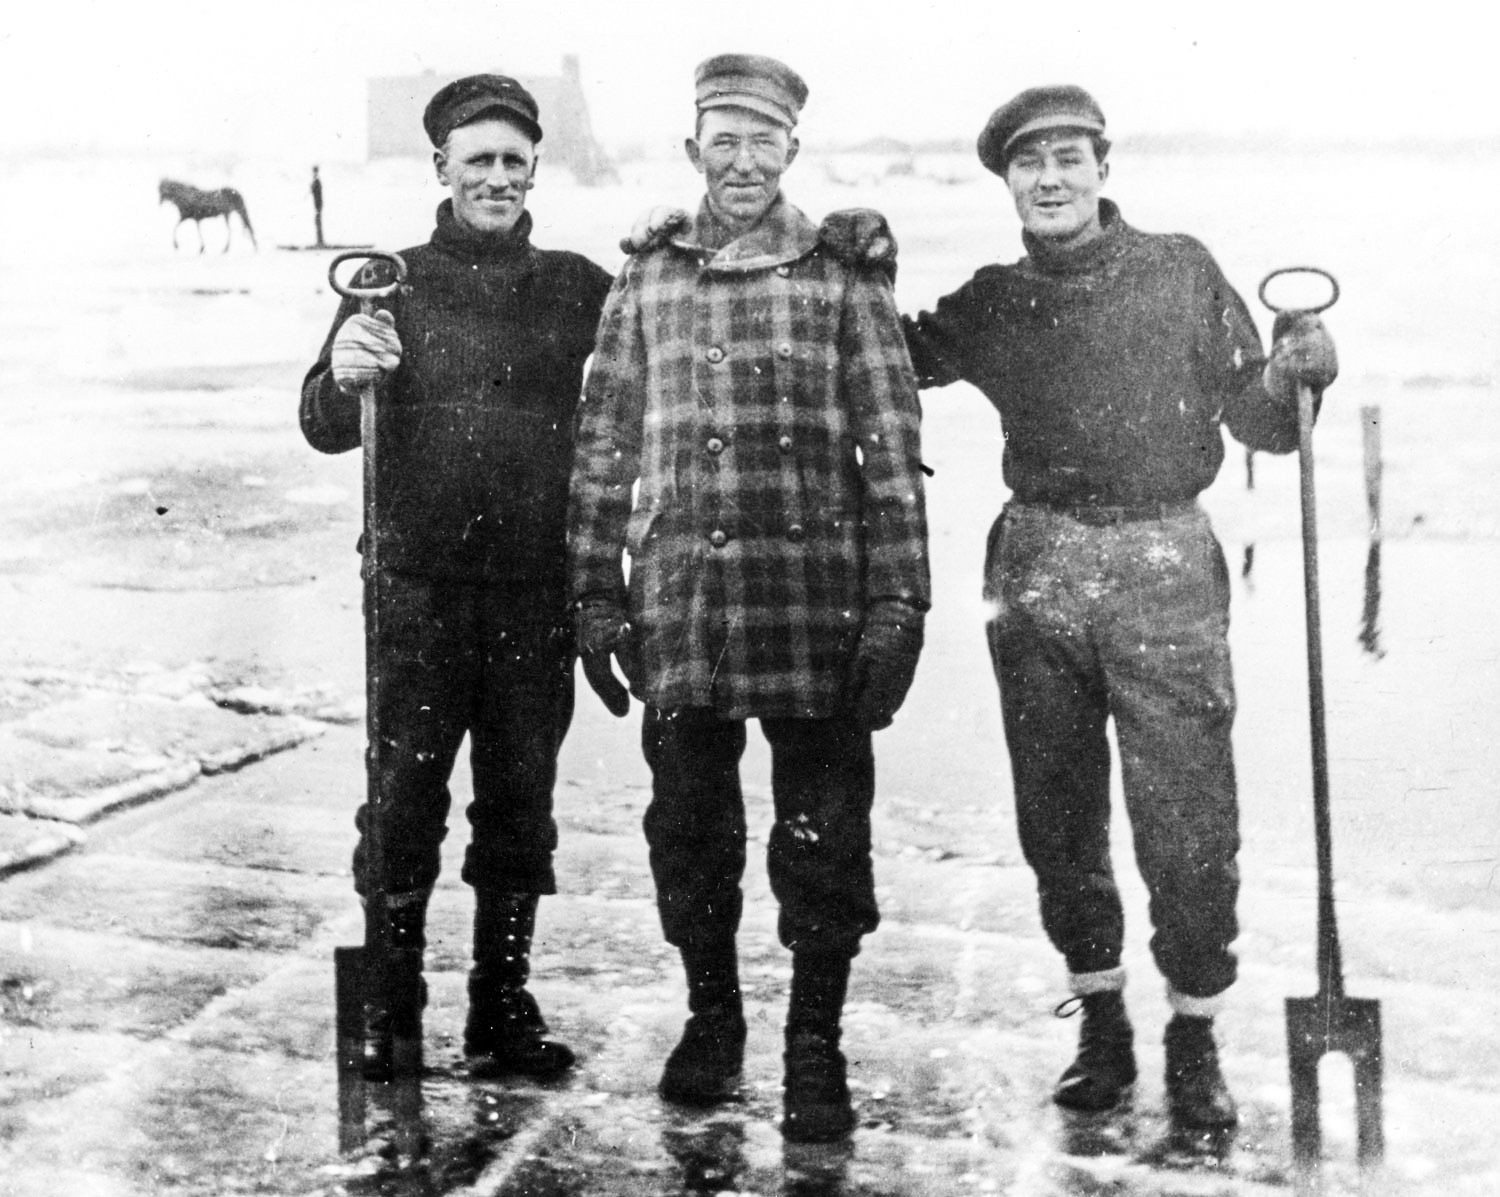 Ice cutters